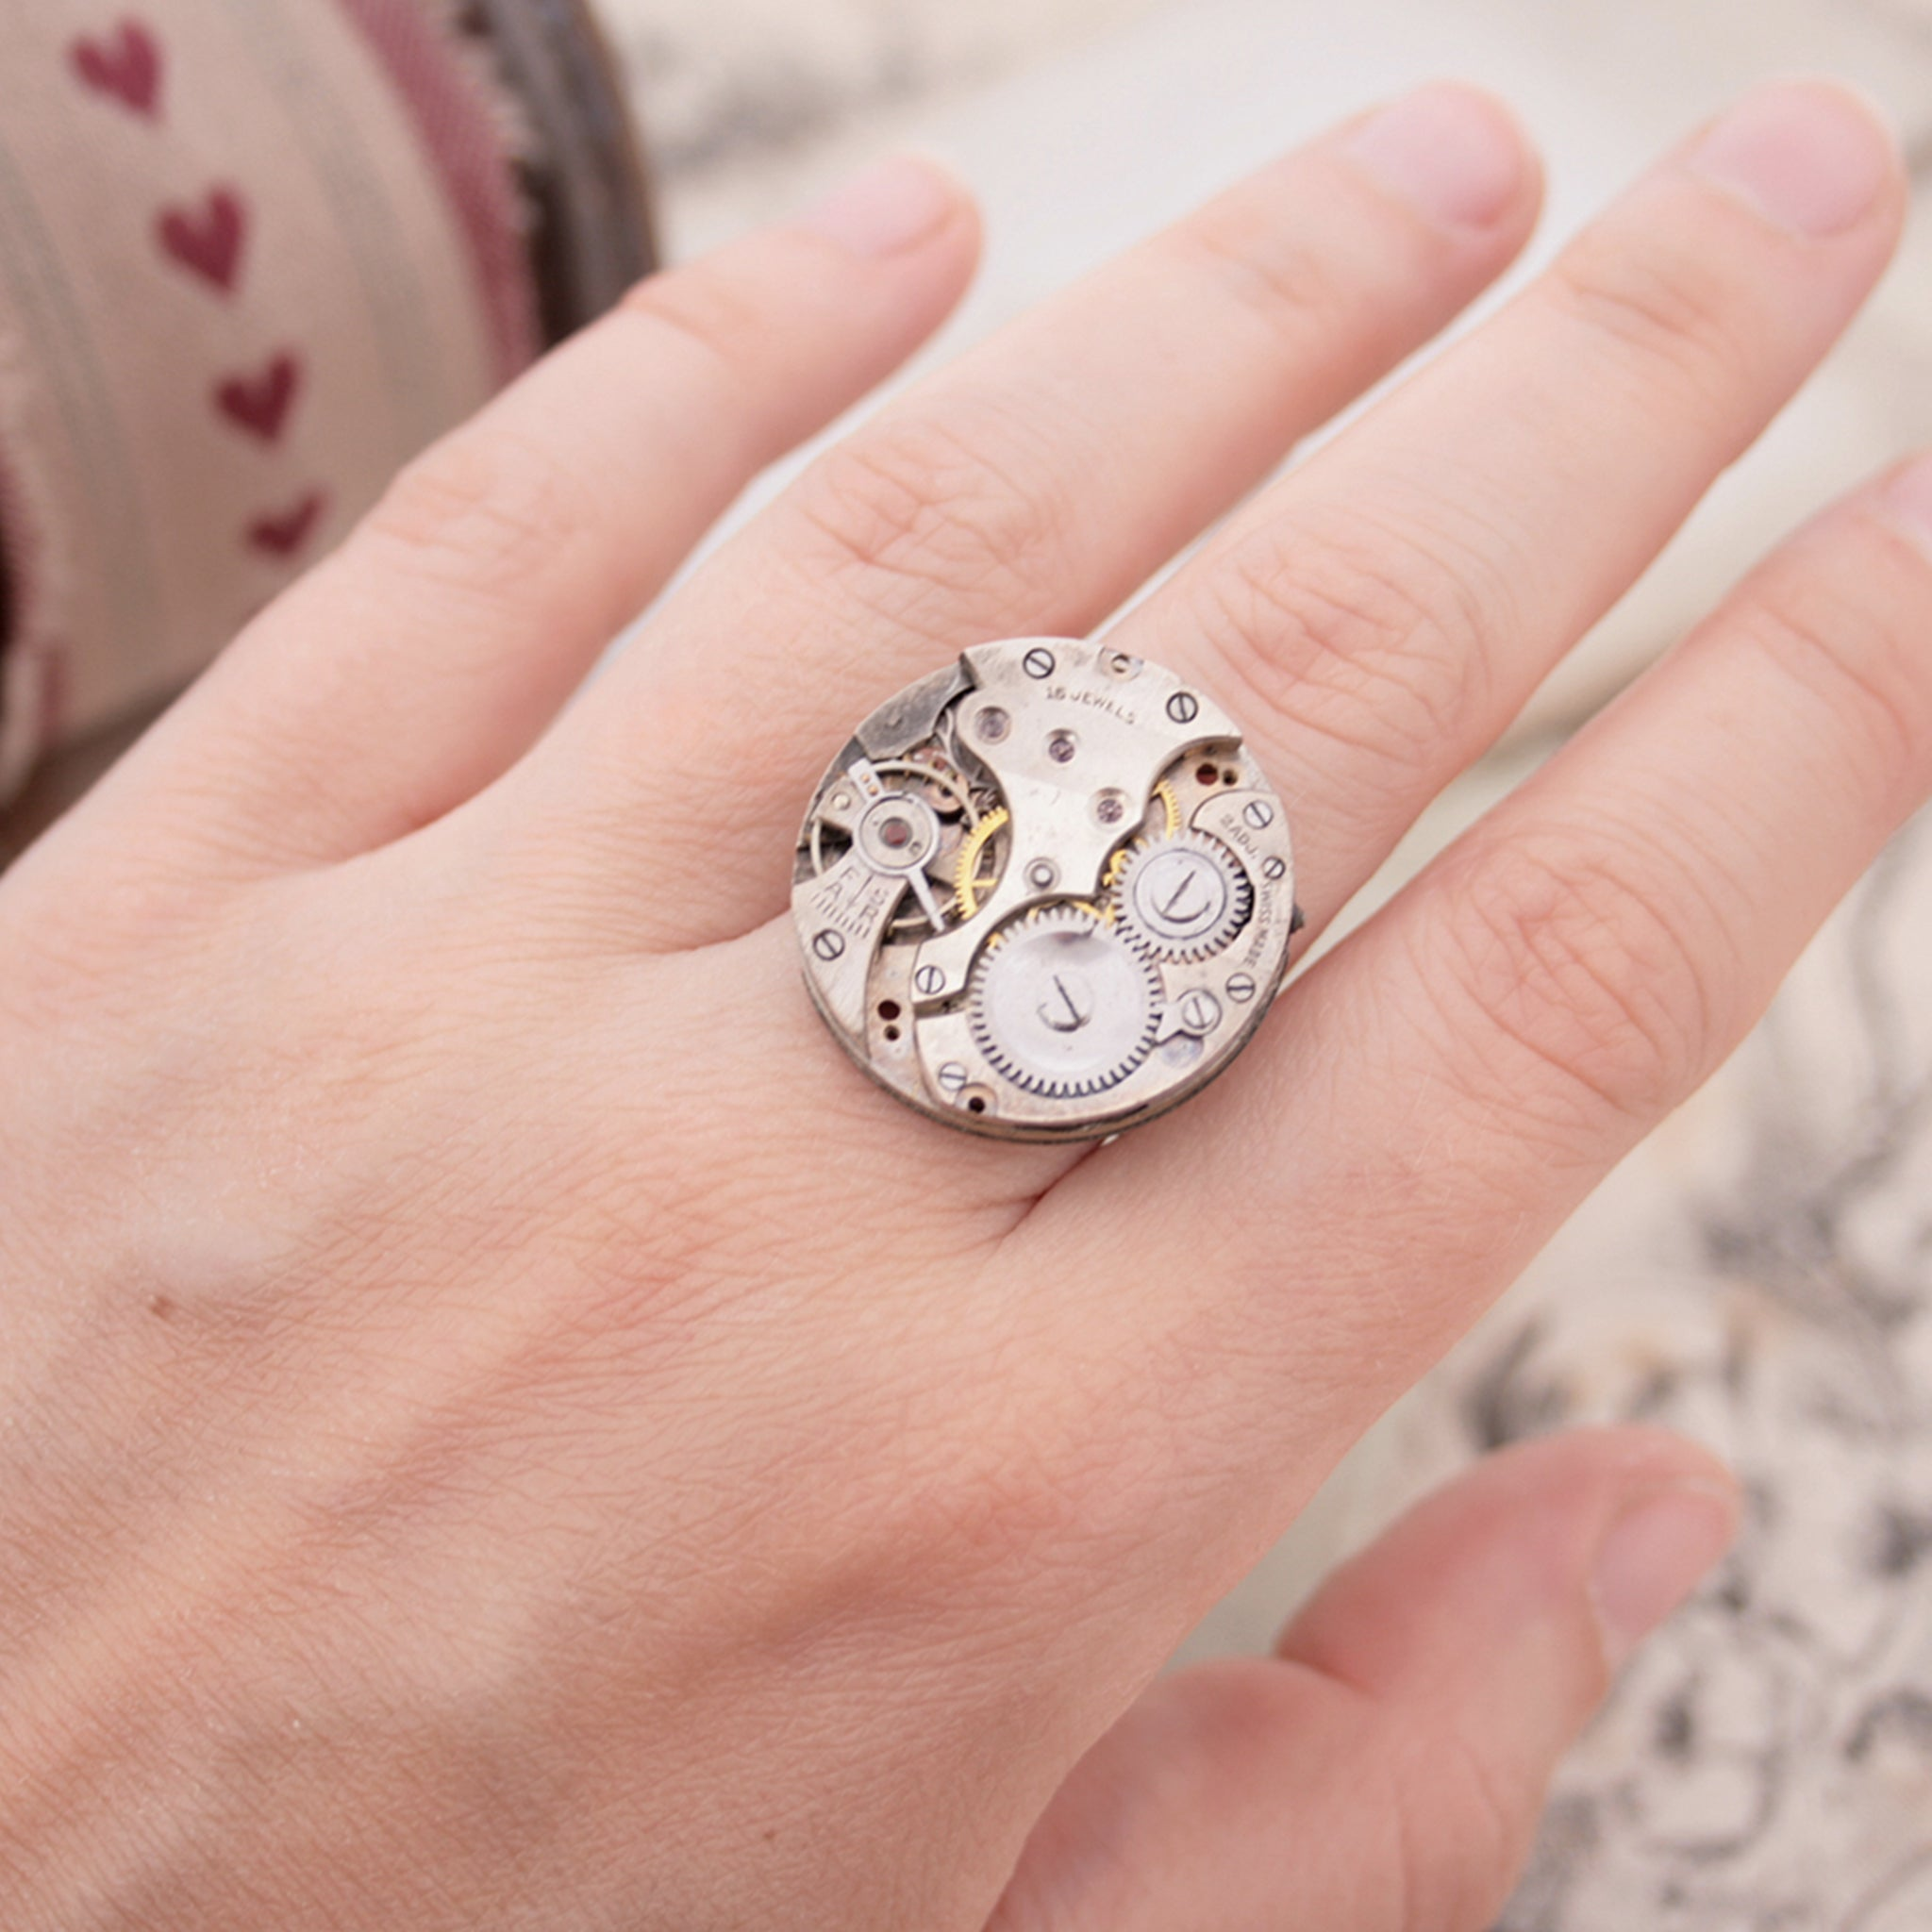 Gothic Ring with Watch Movement on a Hand